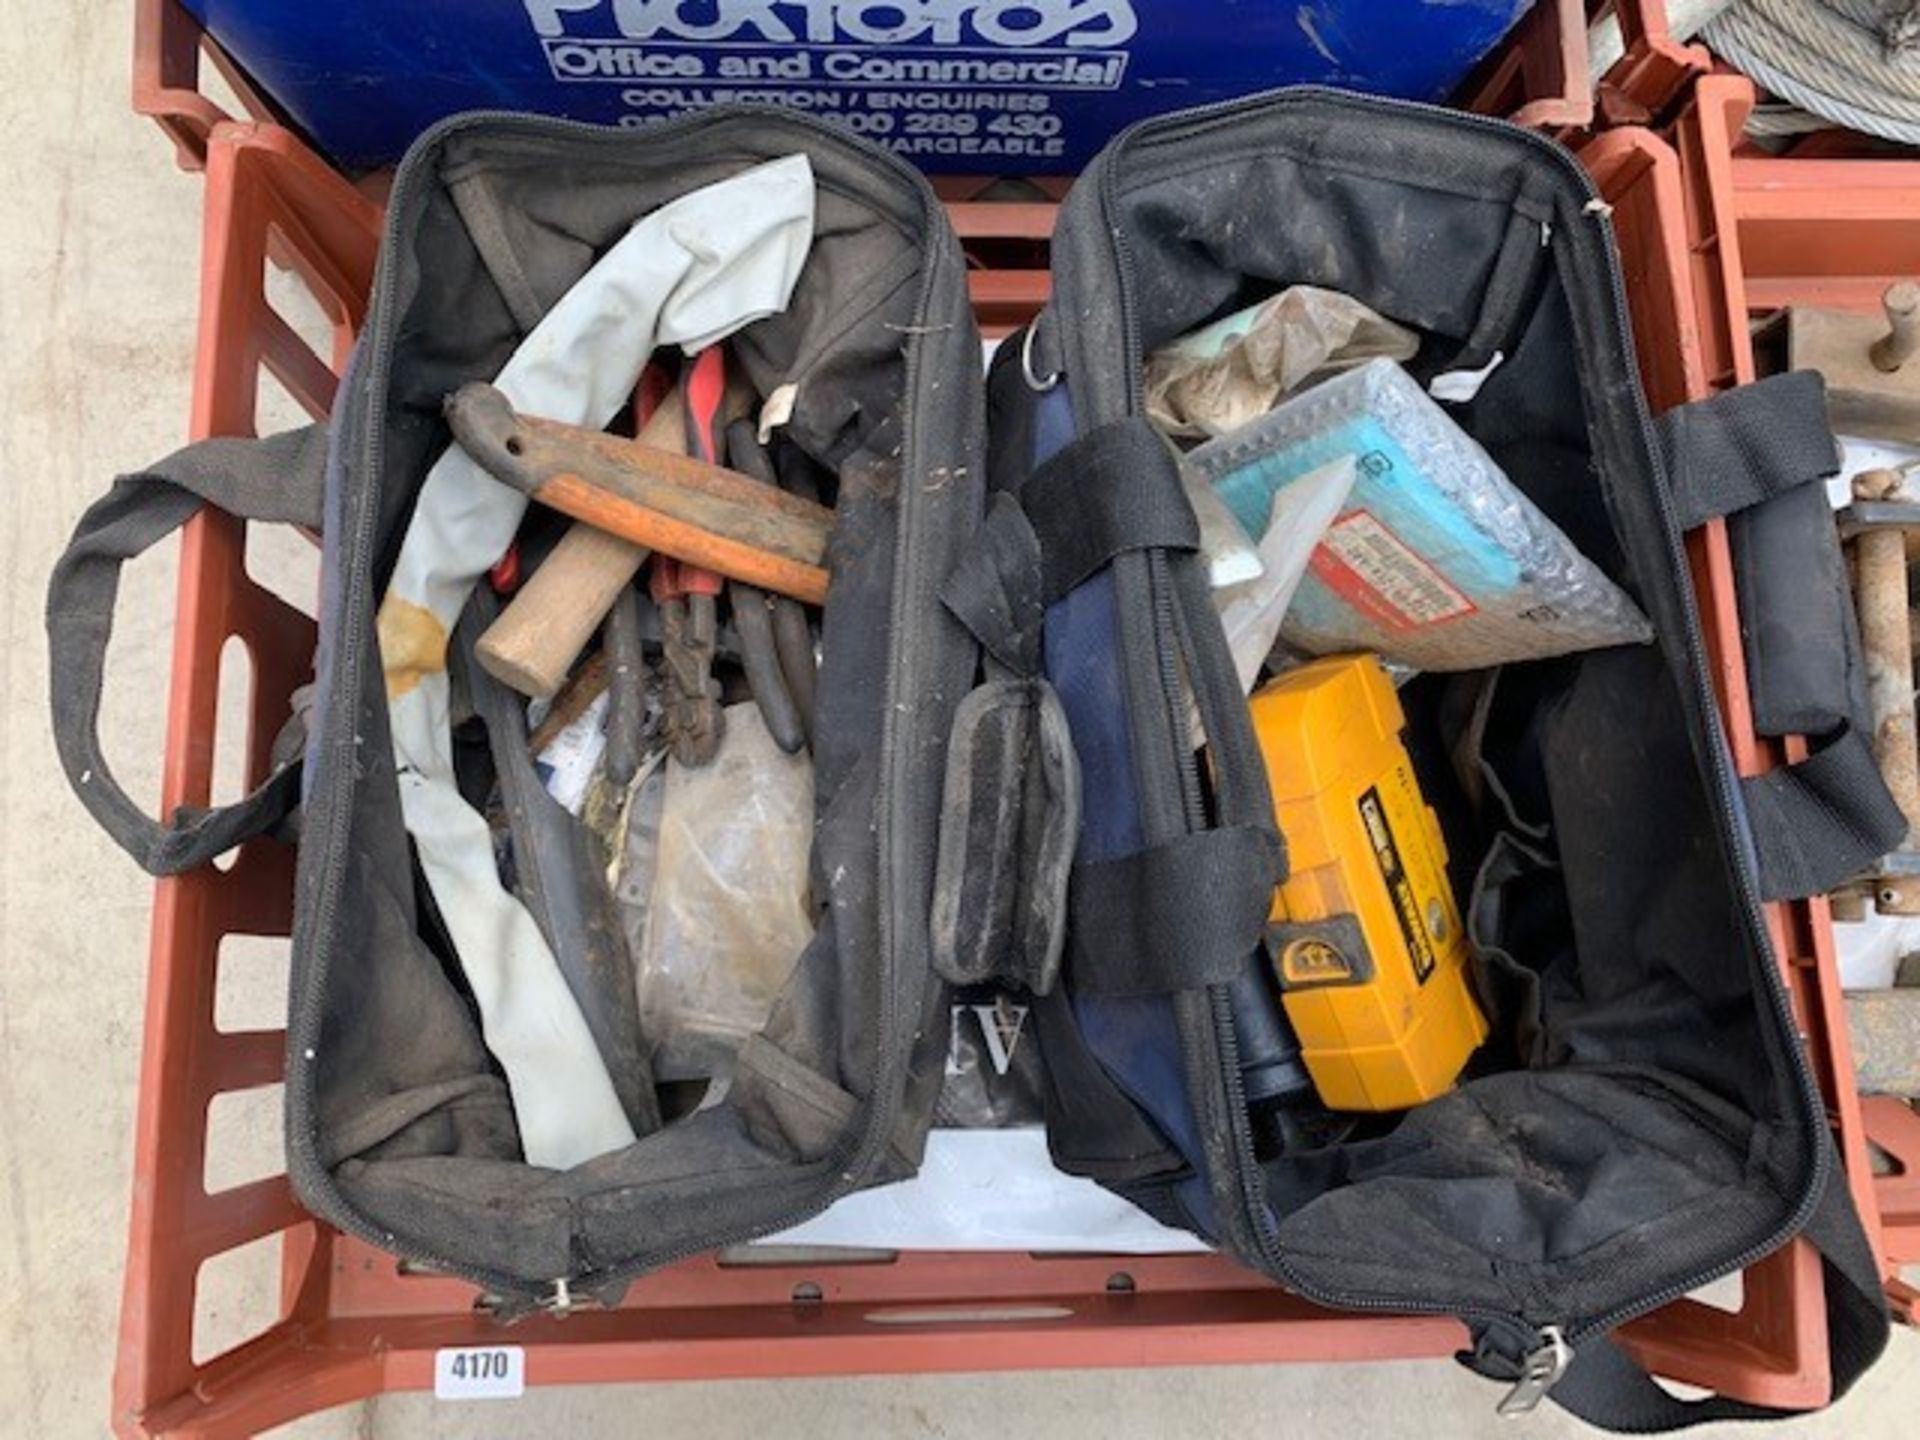 Lot 4170 - Crate containing 2 toolbags, hammer drill, brackets, etc